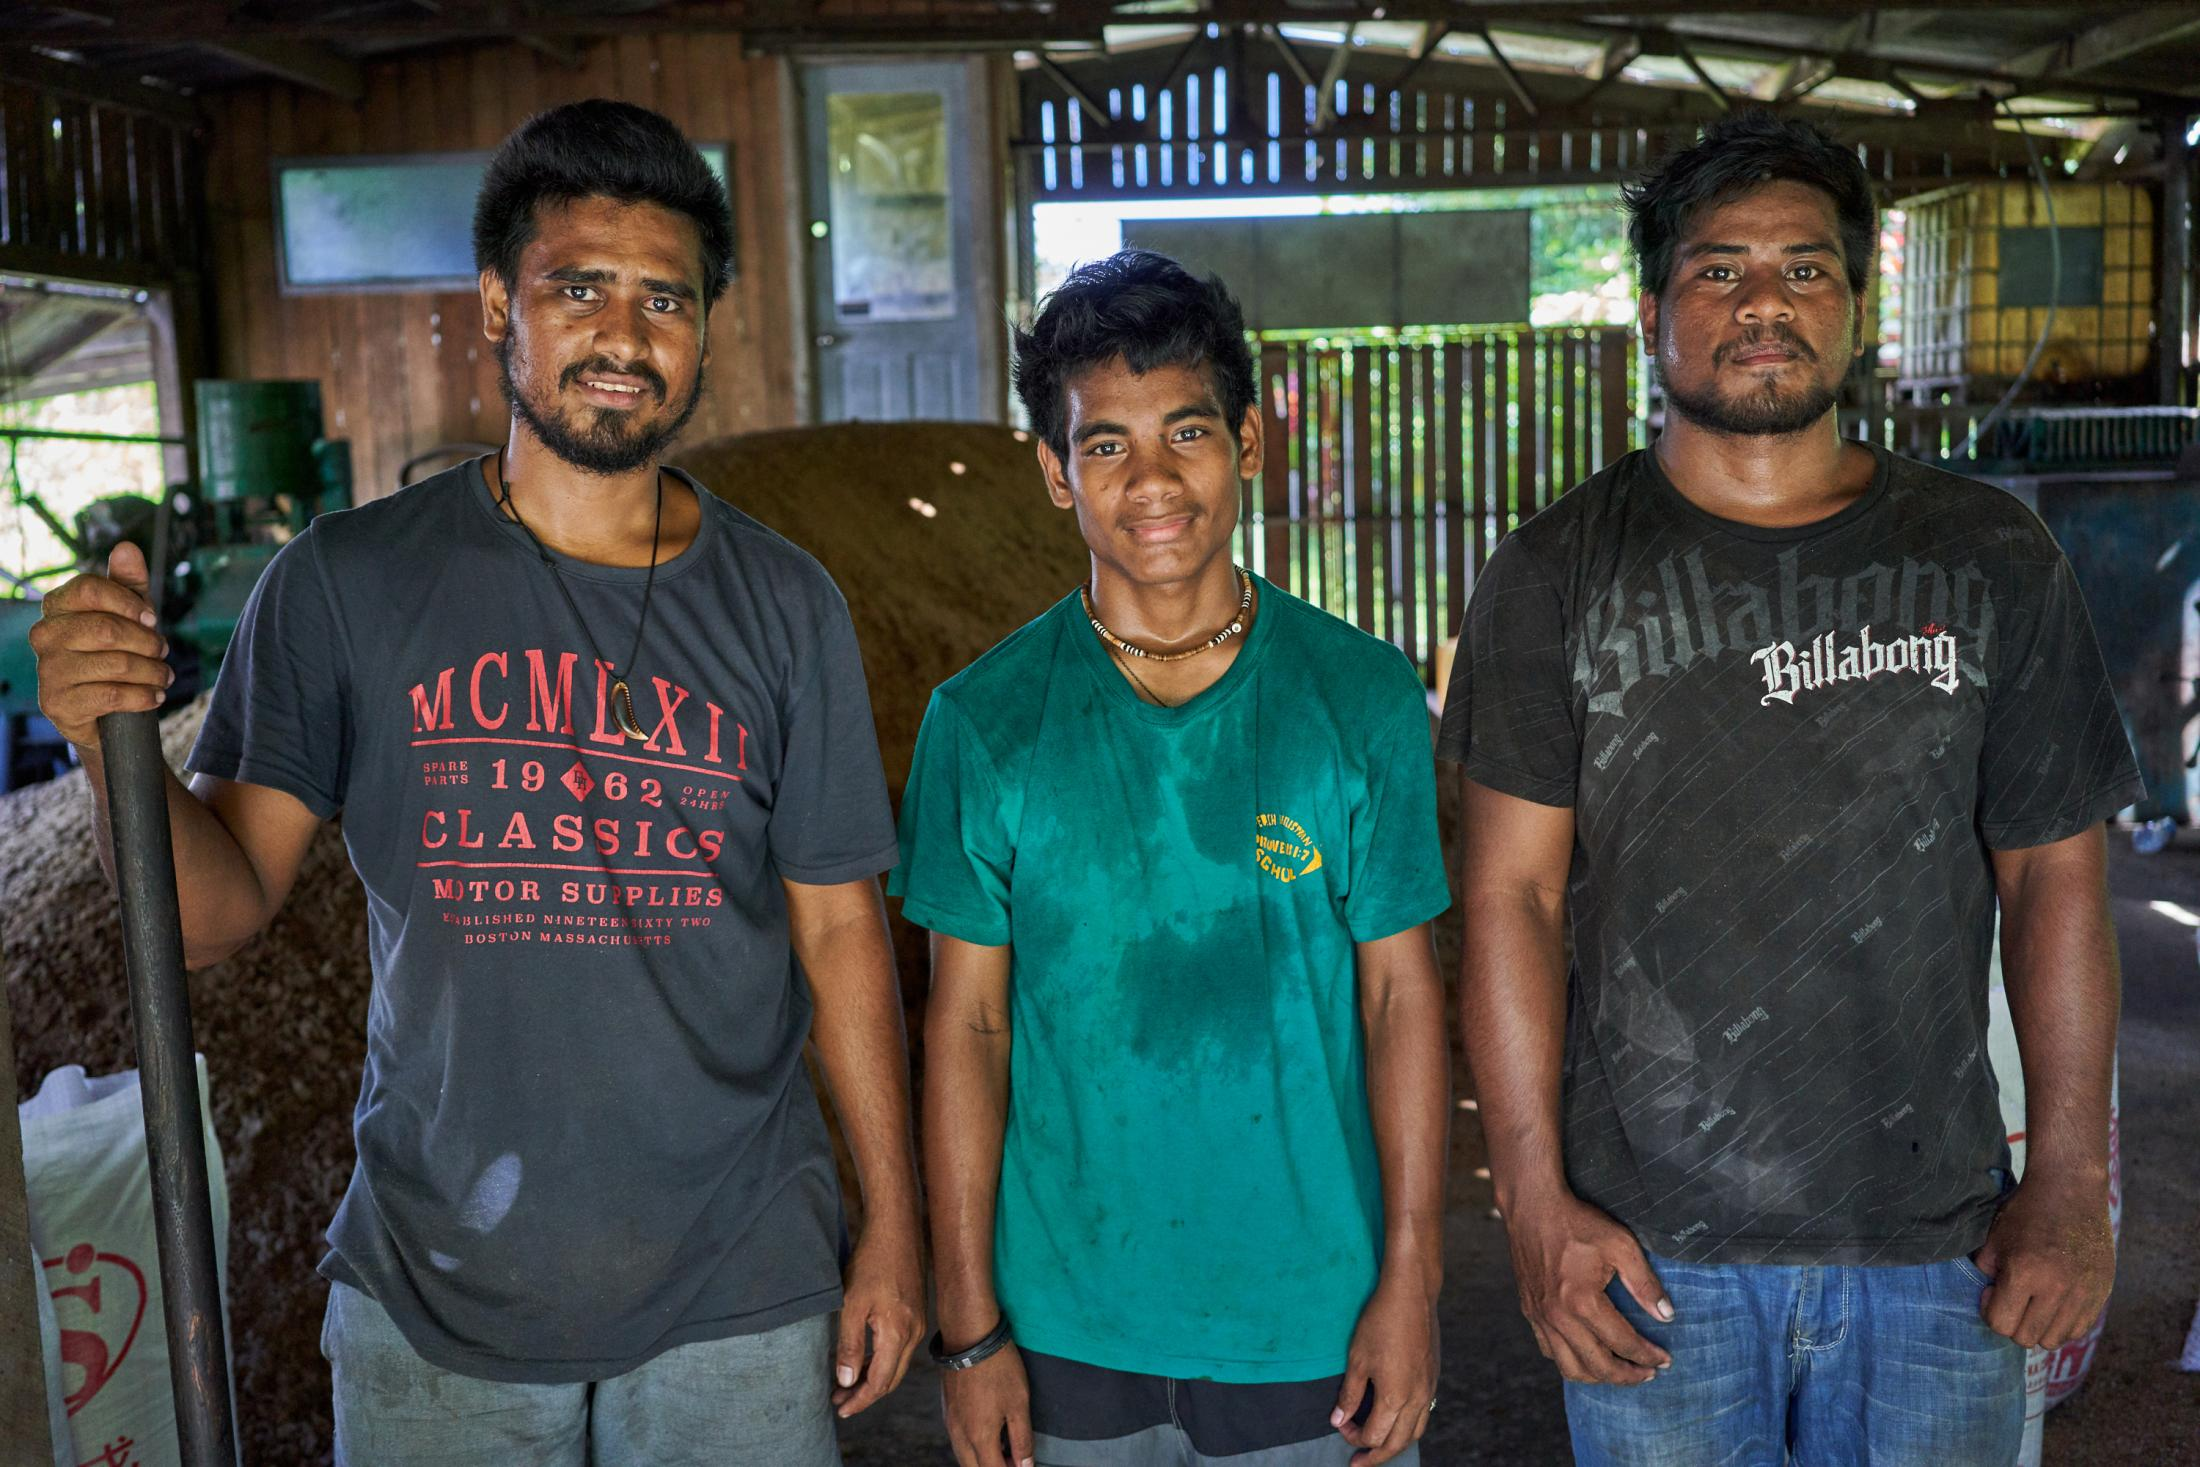 Jack Chottu (grandson of the founder of Chottu's Guadalcanal Products, left), age 23, Jonathan Atanikakia, age 21 (middle), and John Atanikakia, age 15 (right), in one of the workshops in the Chottu facility.